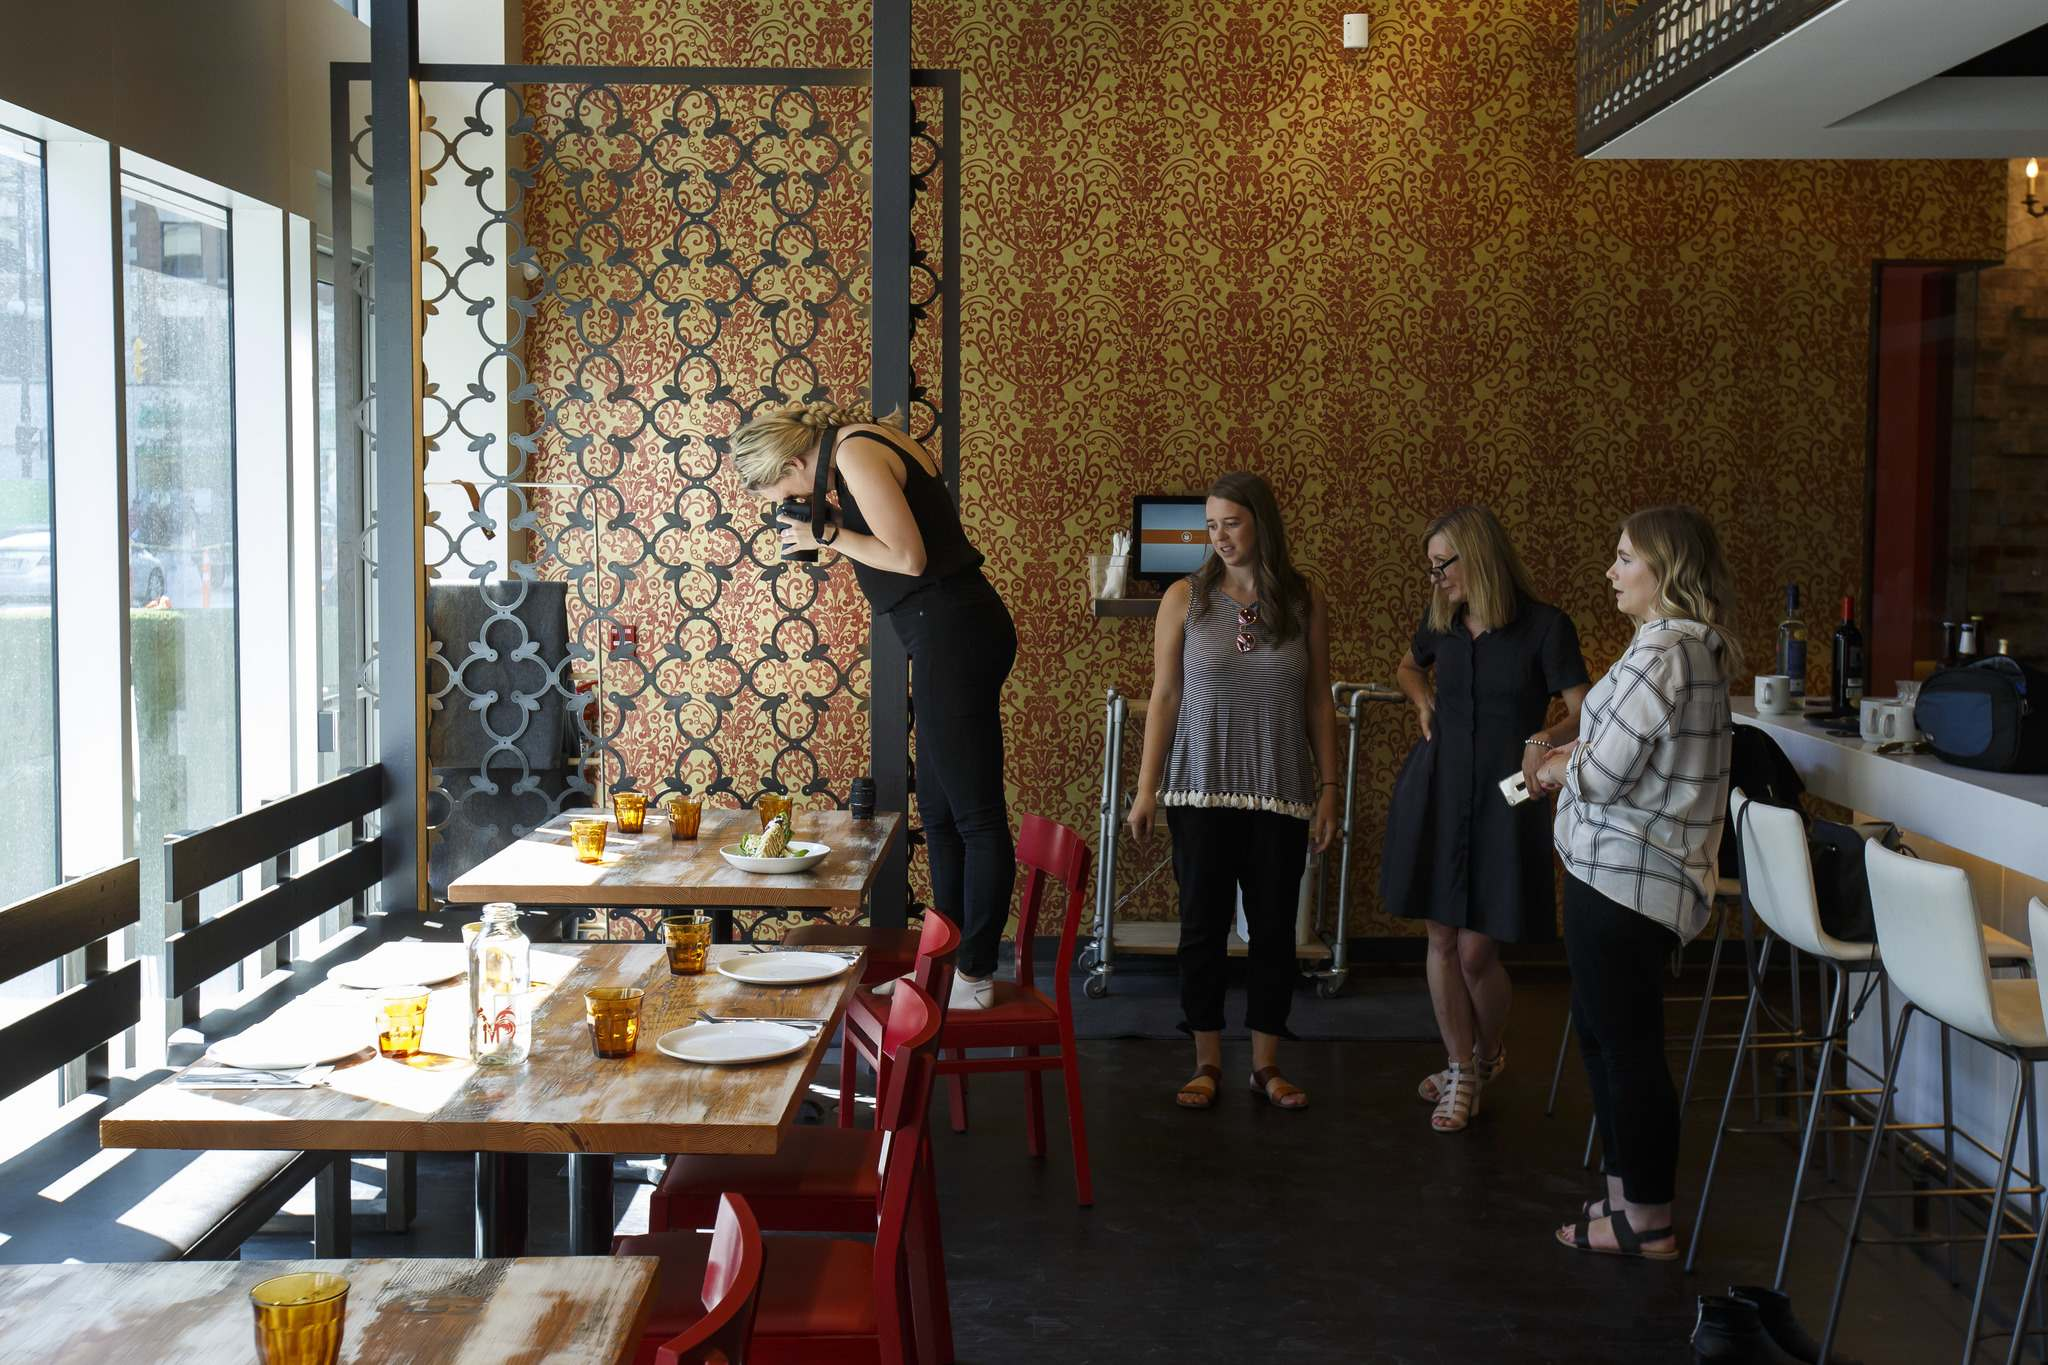 Photographer Lauren Siddall photographs a plate of food from The Merchant Kitchen's menu.